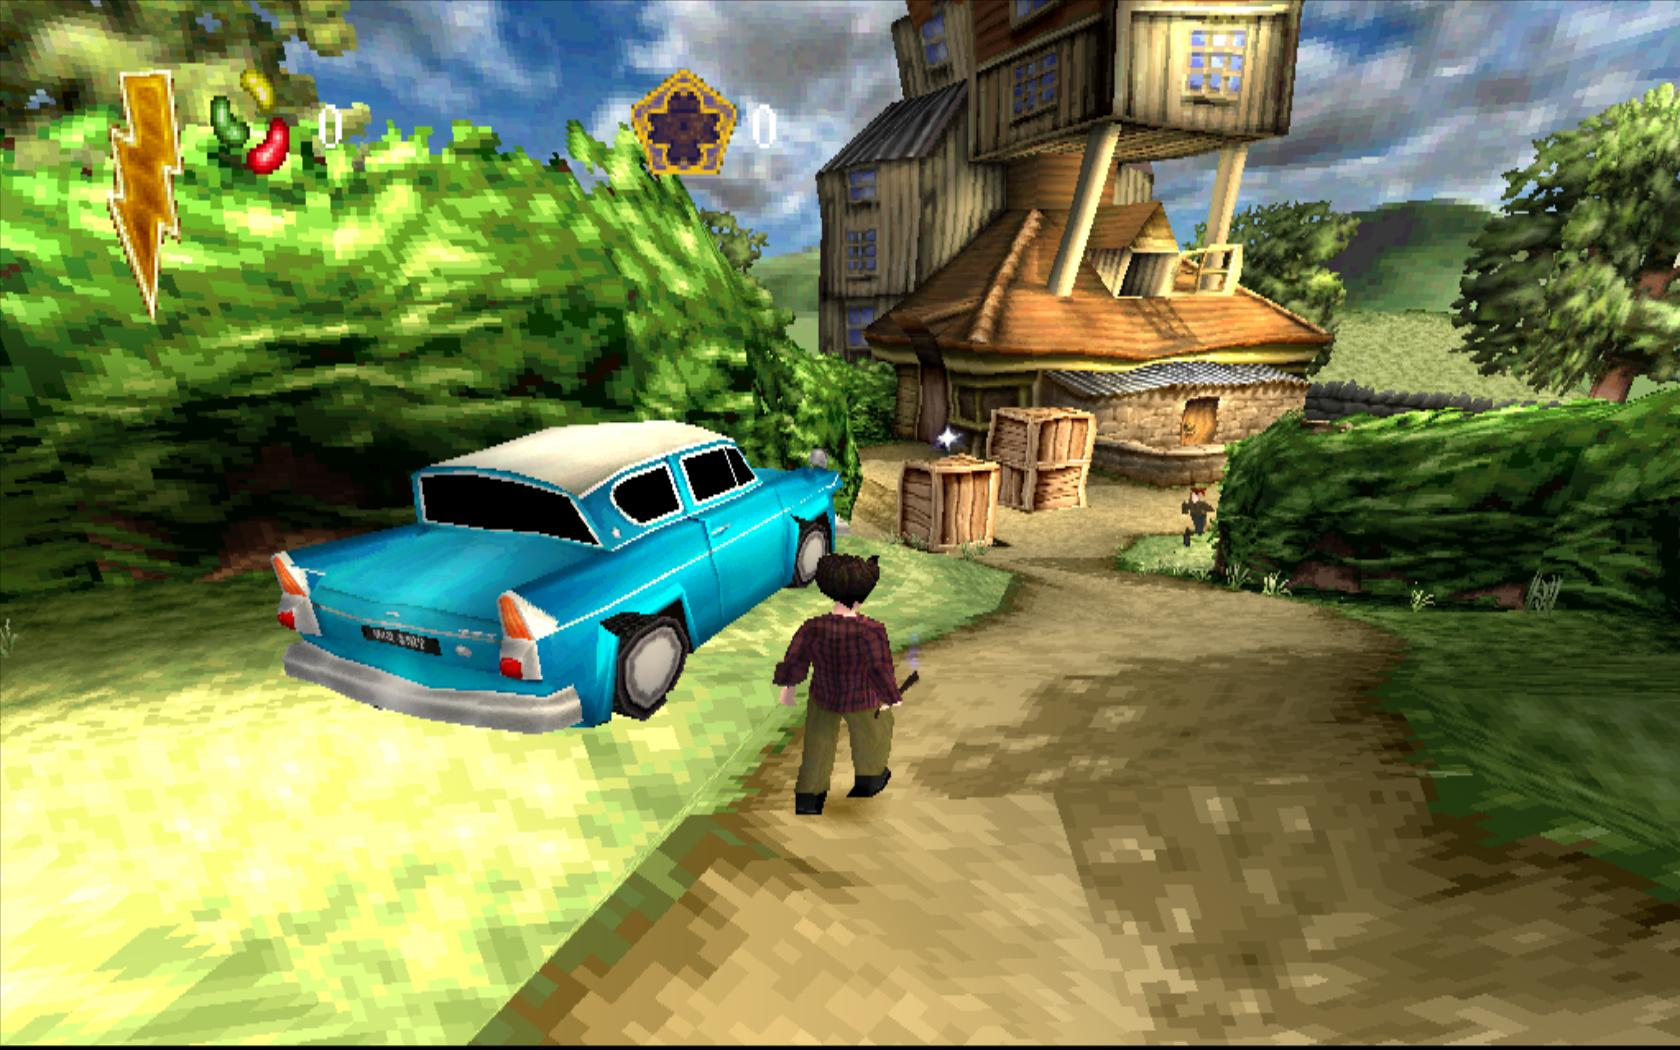 Harry potter and the chamber of secrets pcsx2 download | Peatix